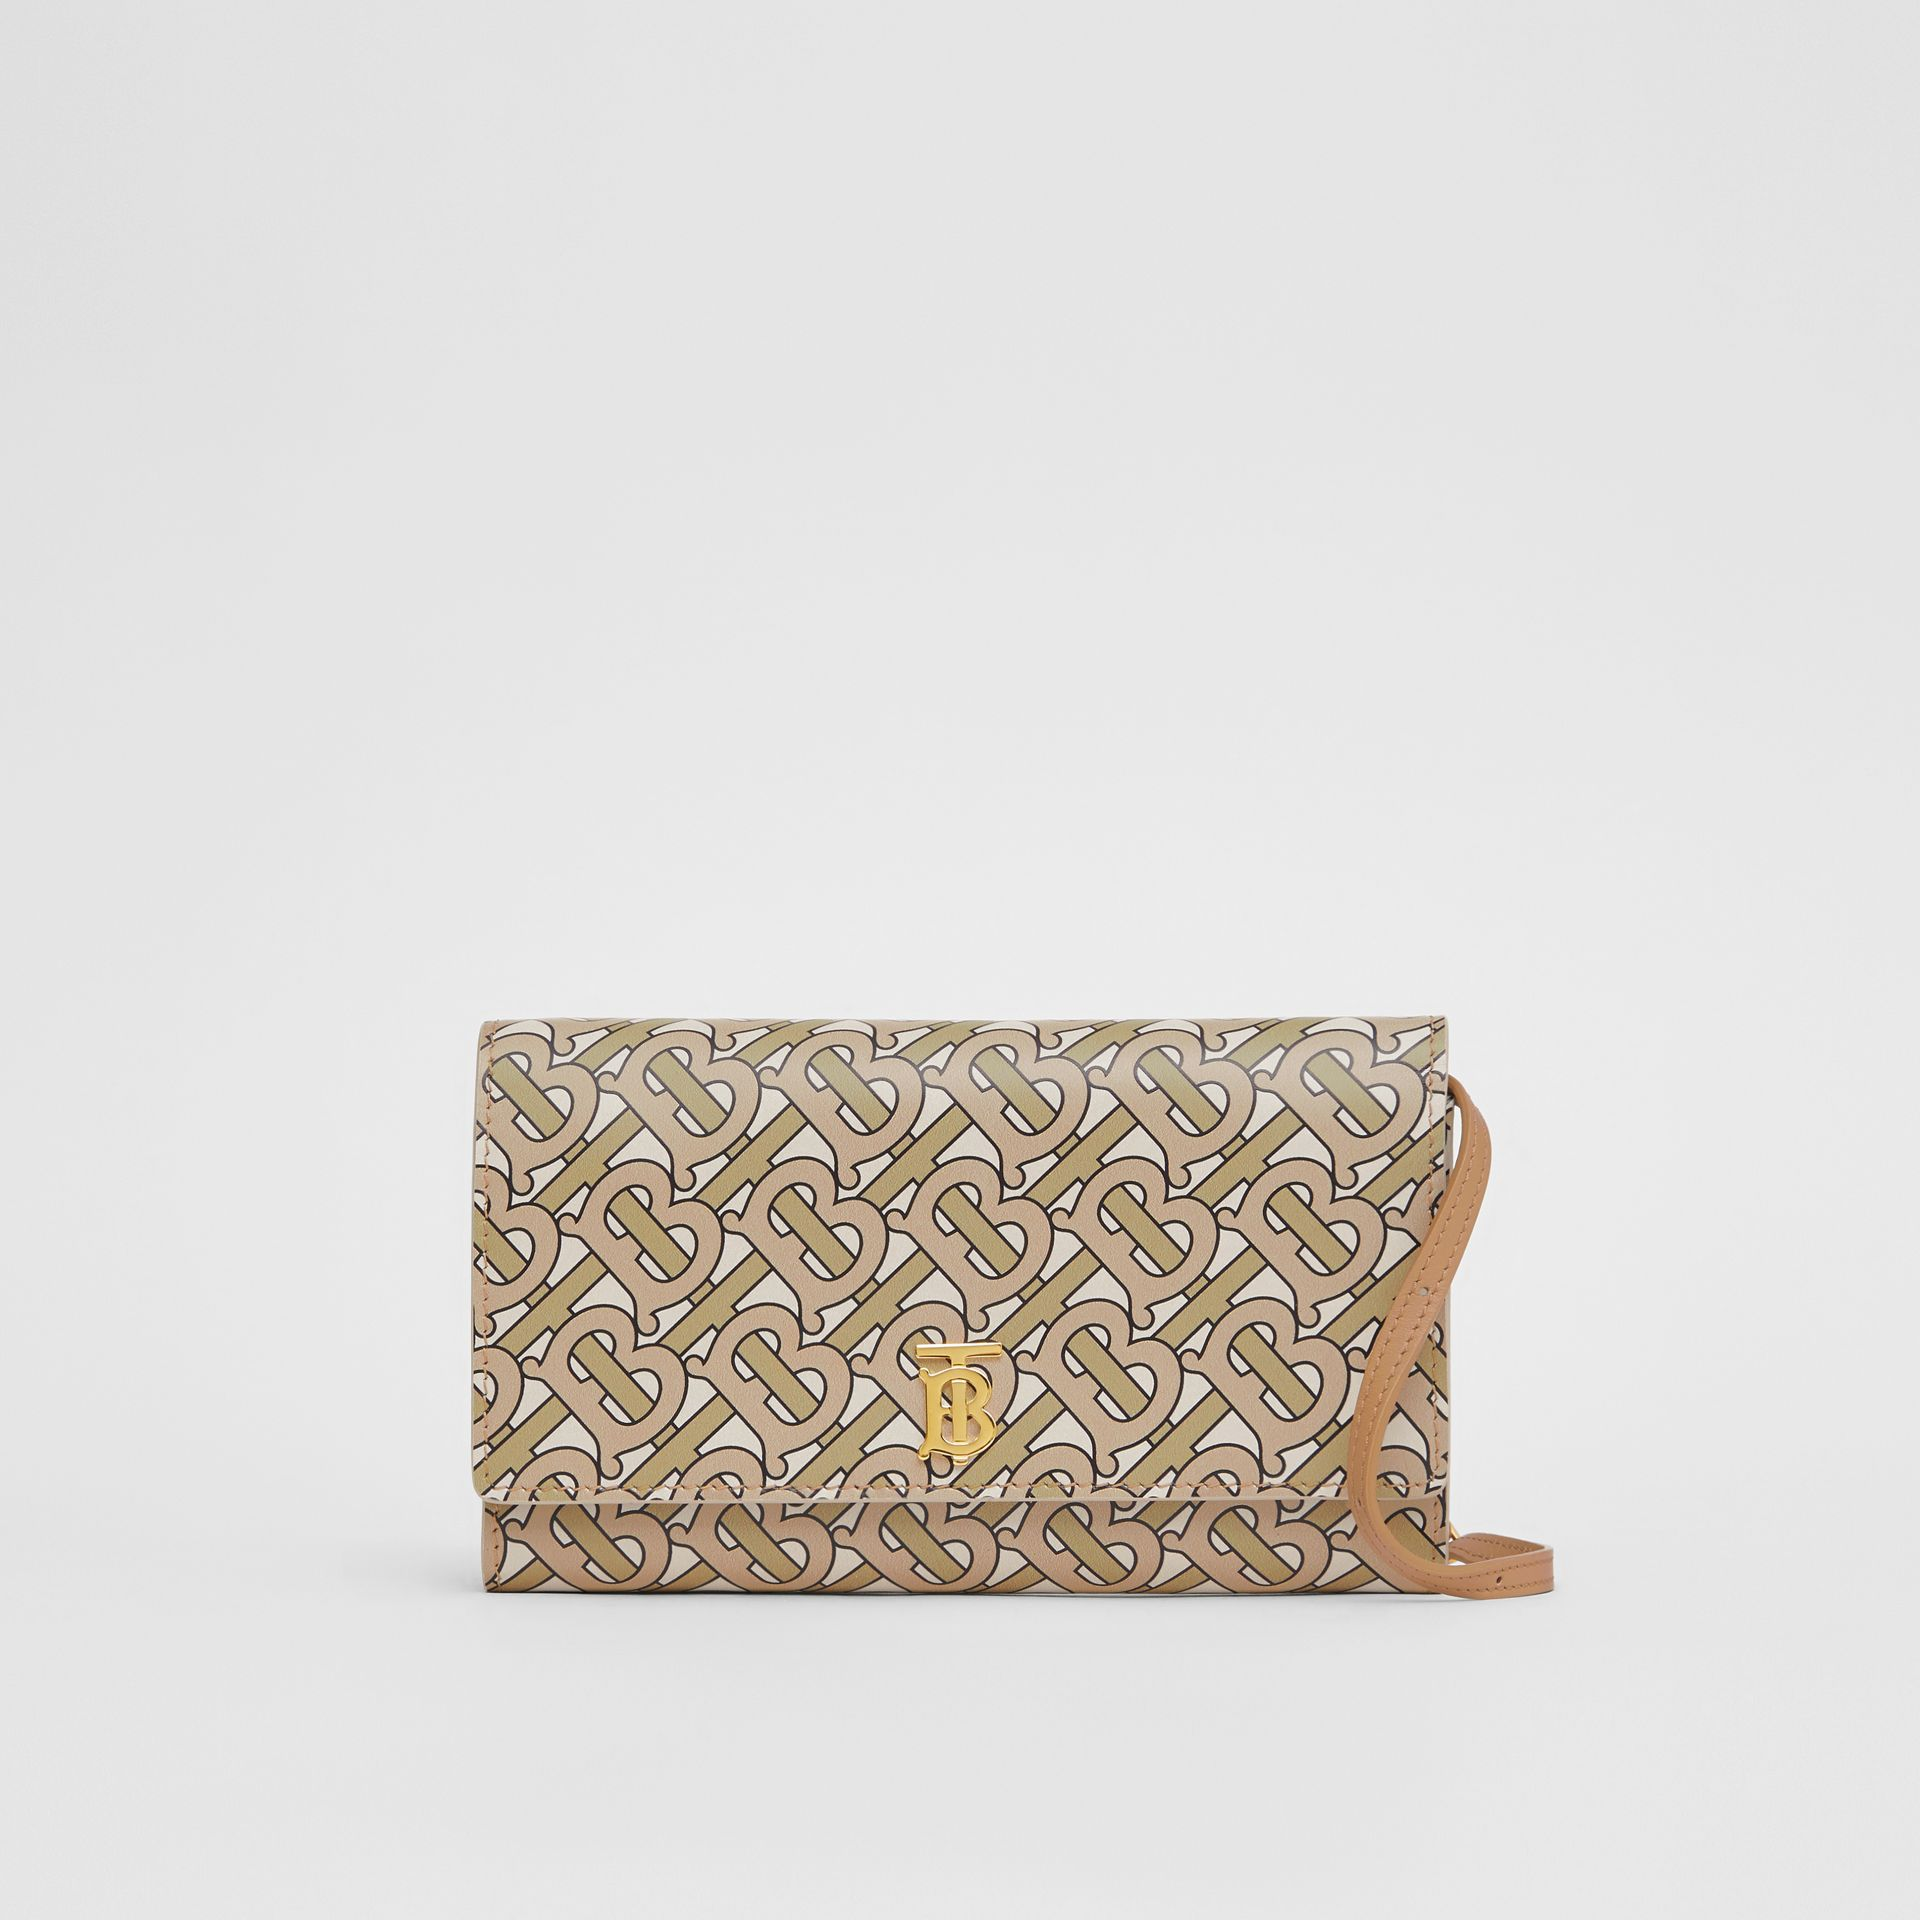 Monogram Print Leather Wallet with Detachable Strap in Beige - Women | Burberry - gallery image 0